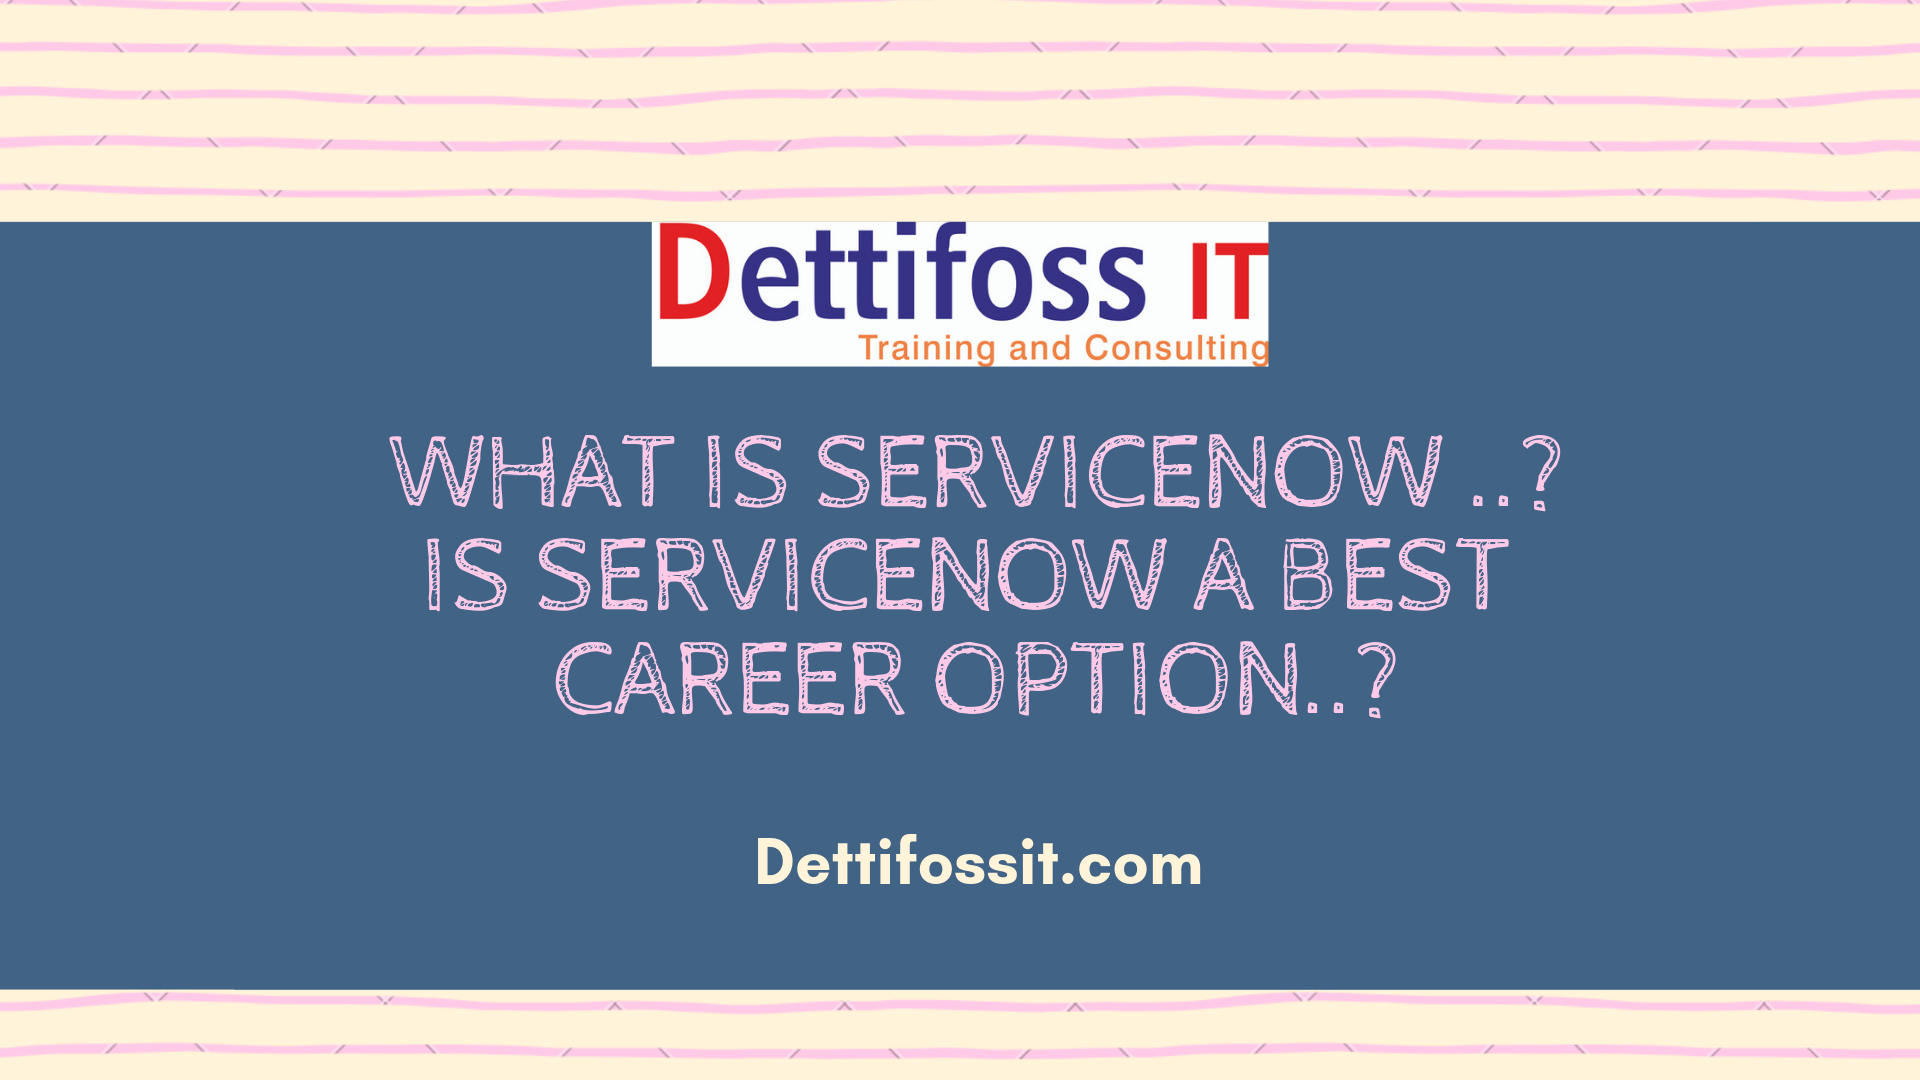 What is ServiceNow? What is the scope of ServiceNow in India in the future?